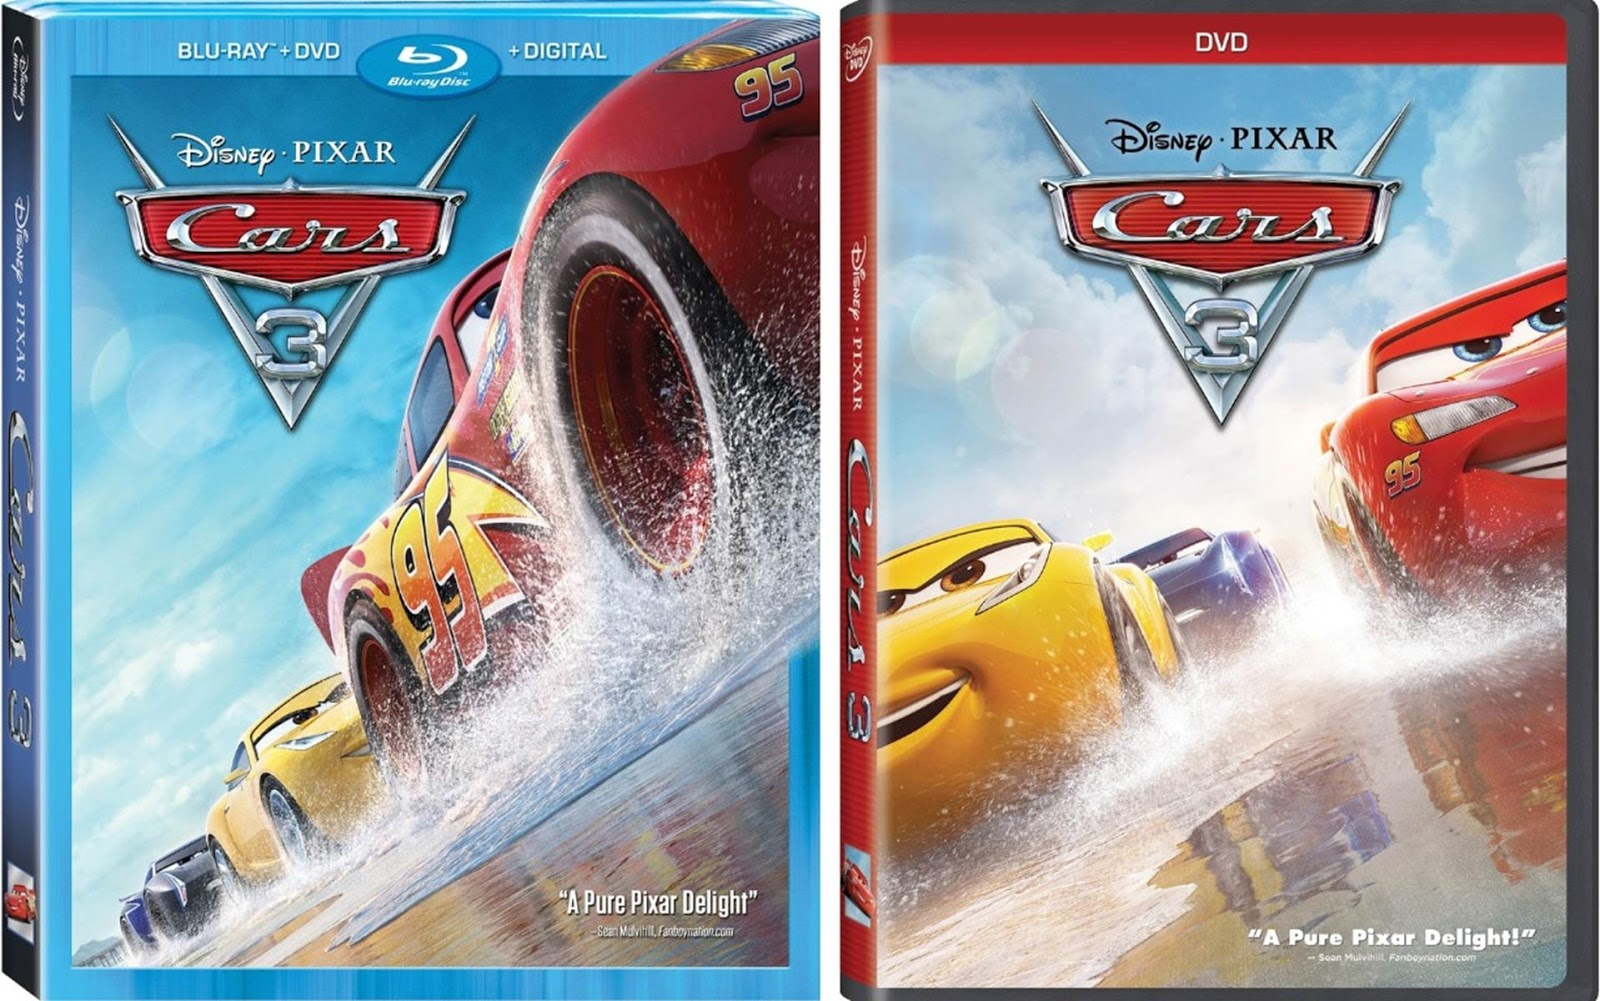 cars 3 marks pixars first 4k ultra hd release on